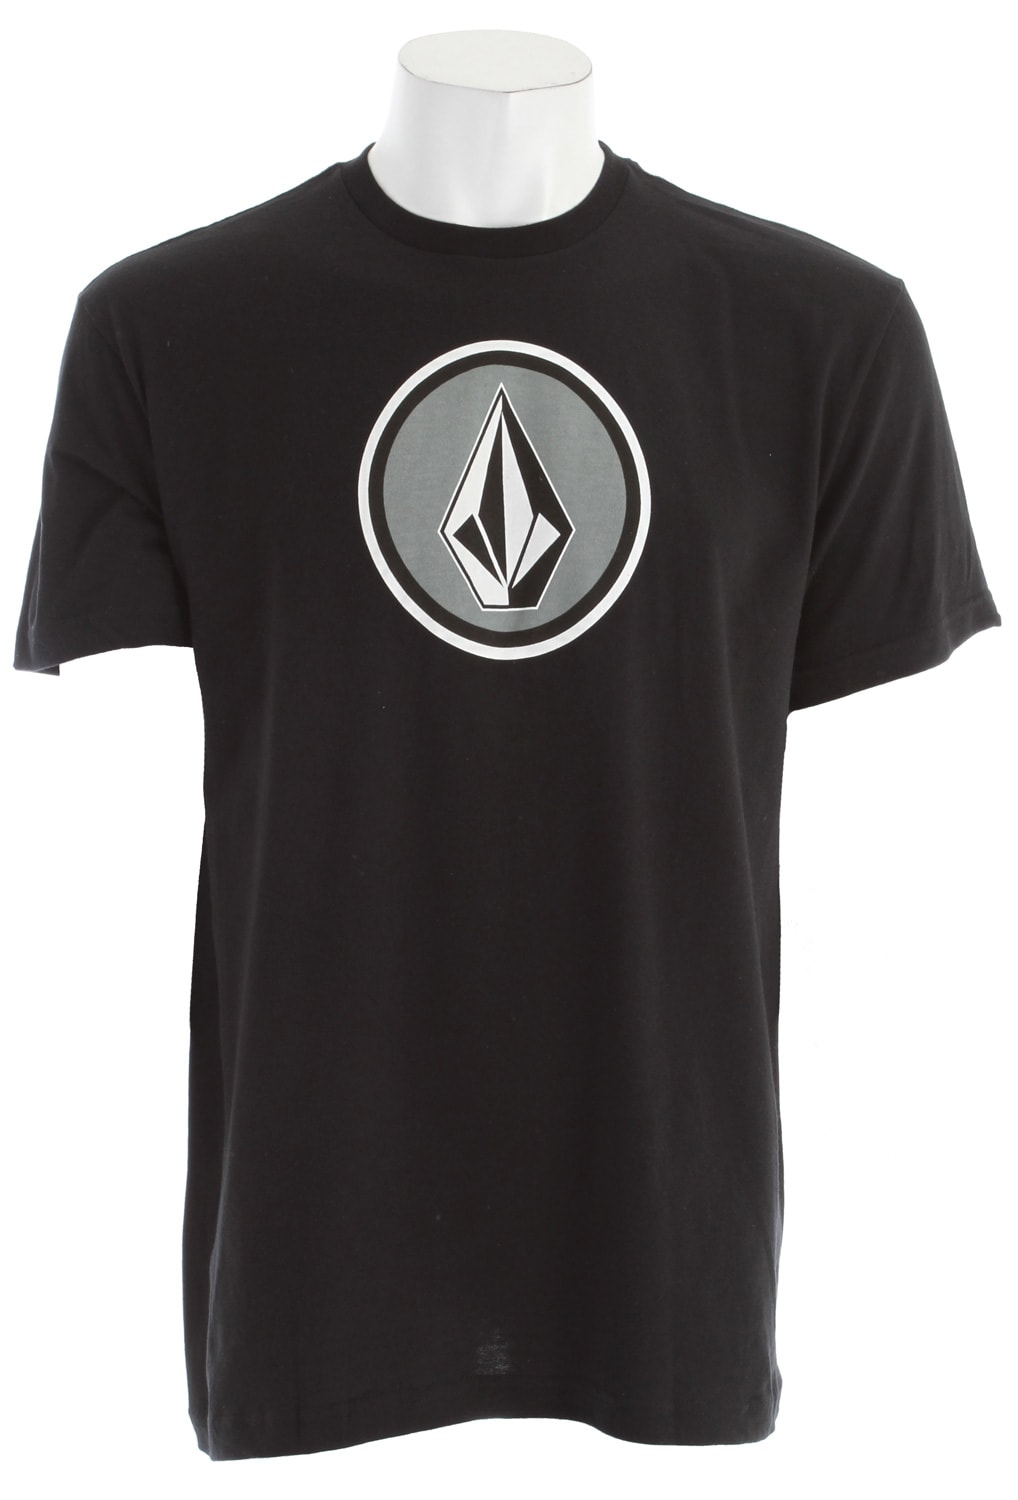 Shop for Volcom Cognito T-Shirt Black - Men's